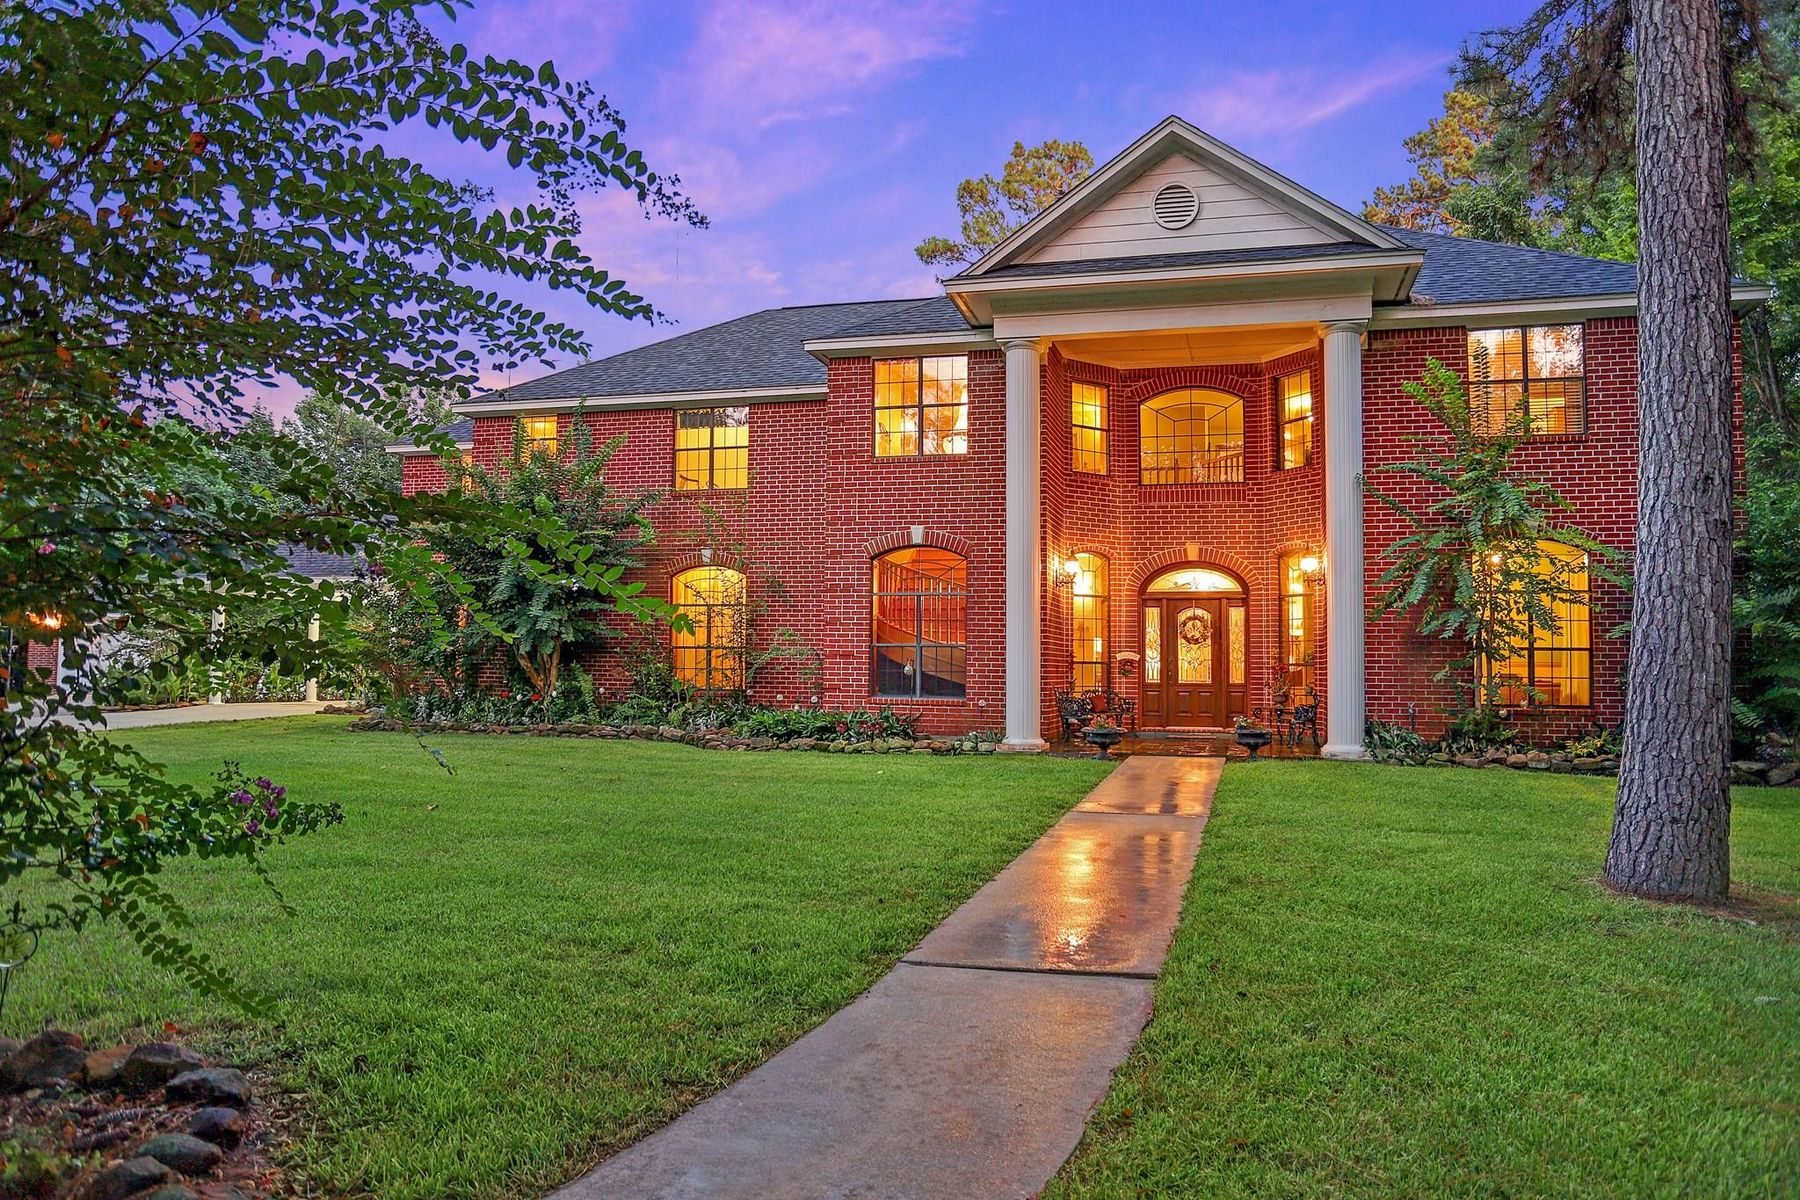 Single Family Homes for Sale at 20818 Highet Place Tomball, Texas 77375 United States